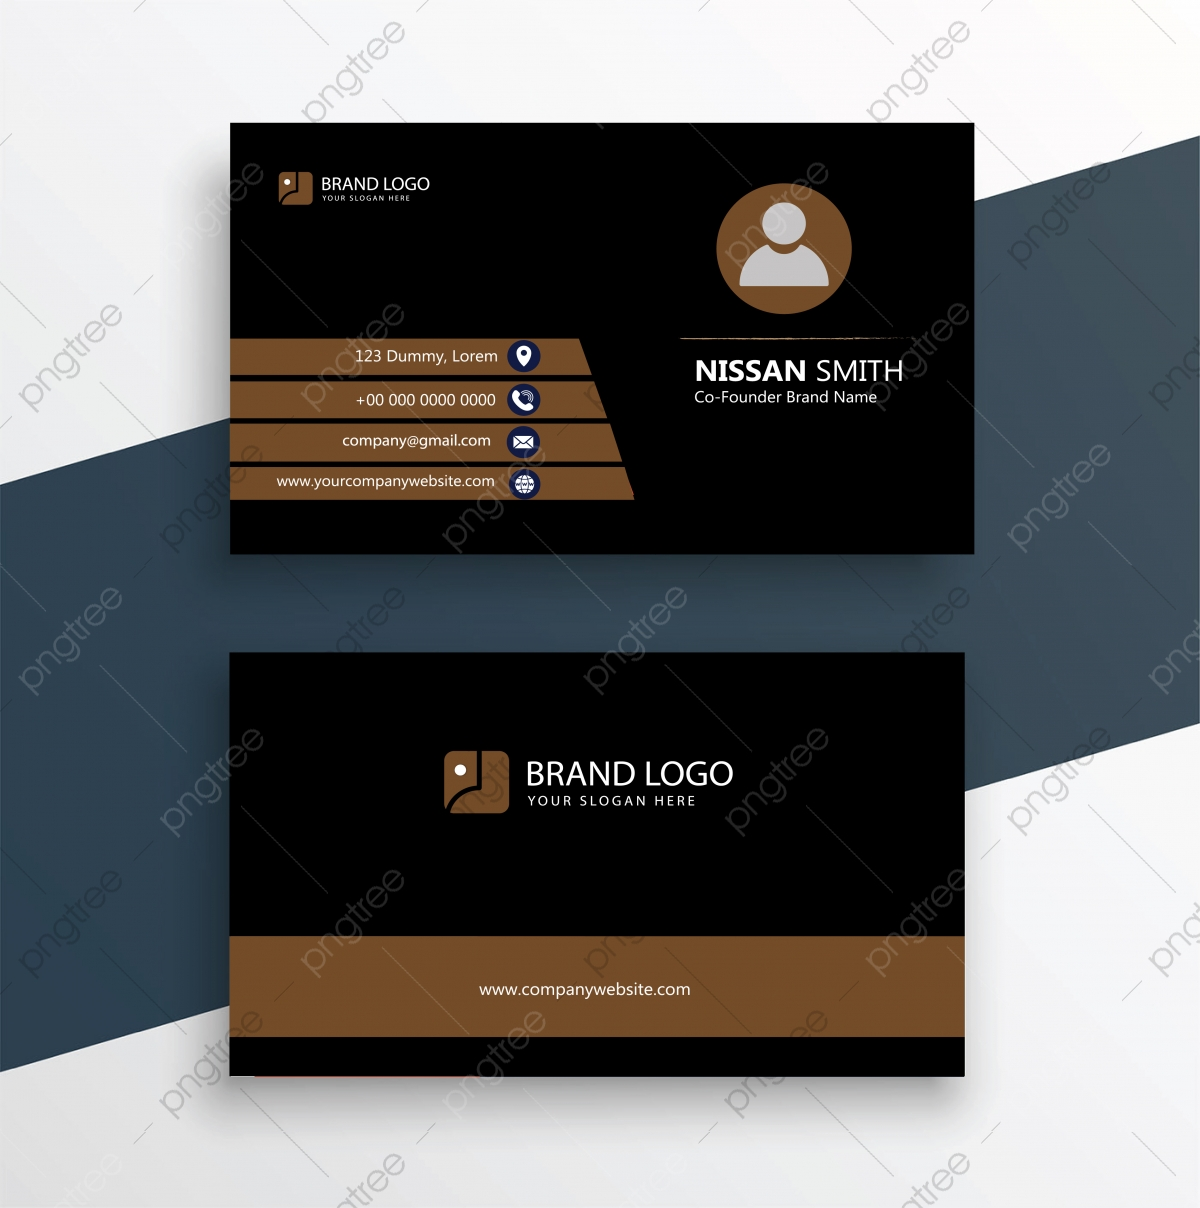 Business Card Design Template from png.pngtree.com